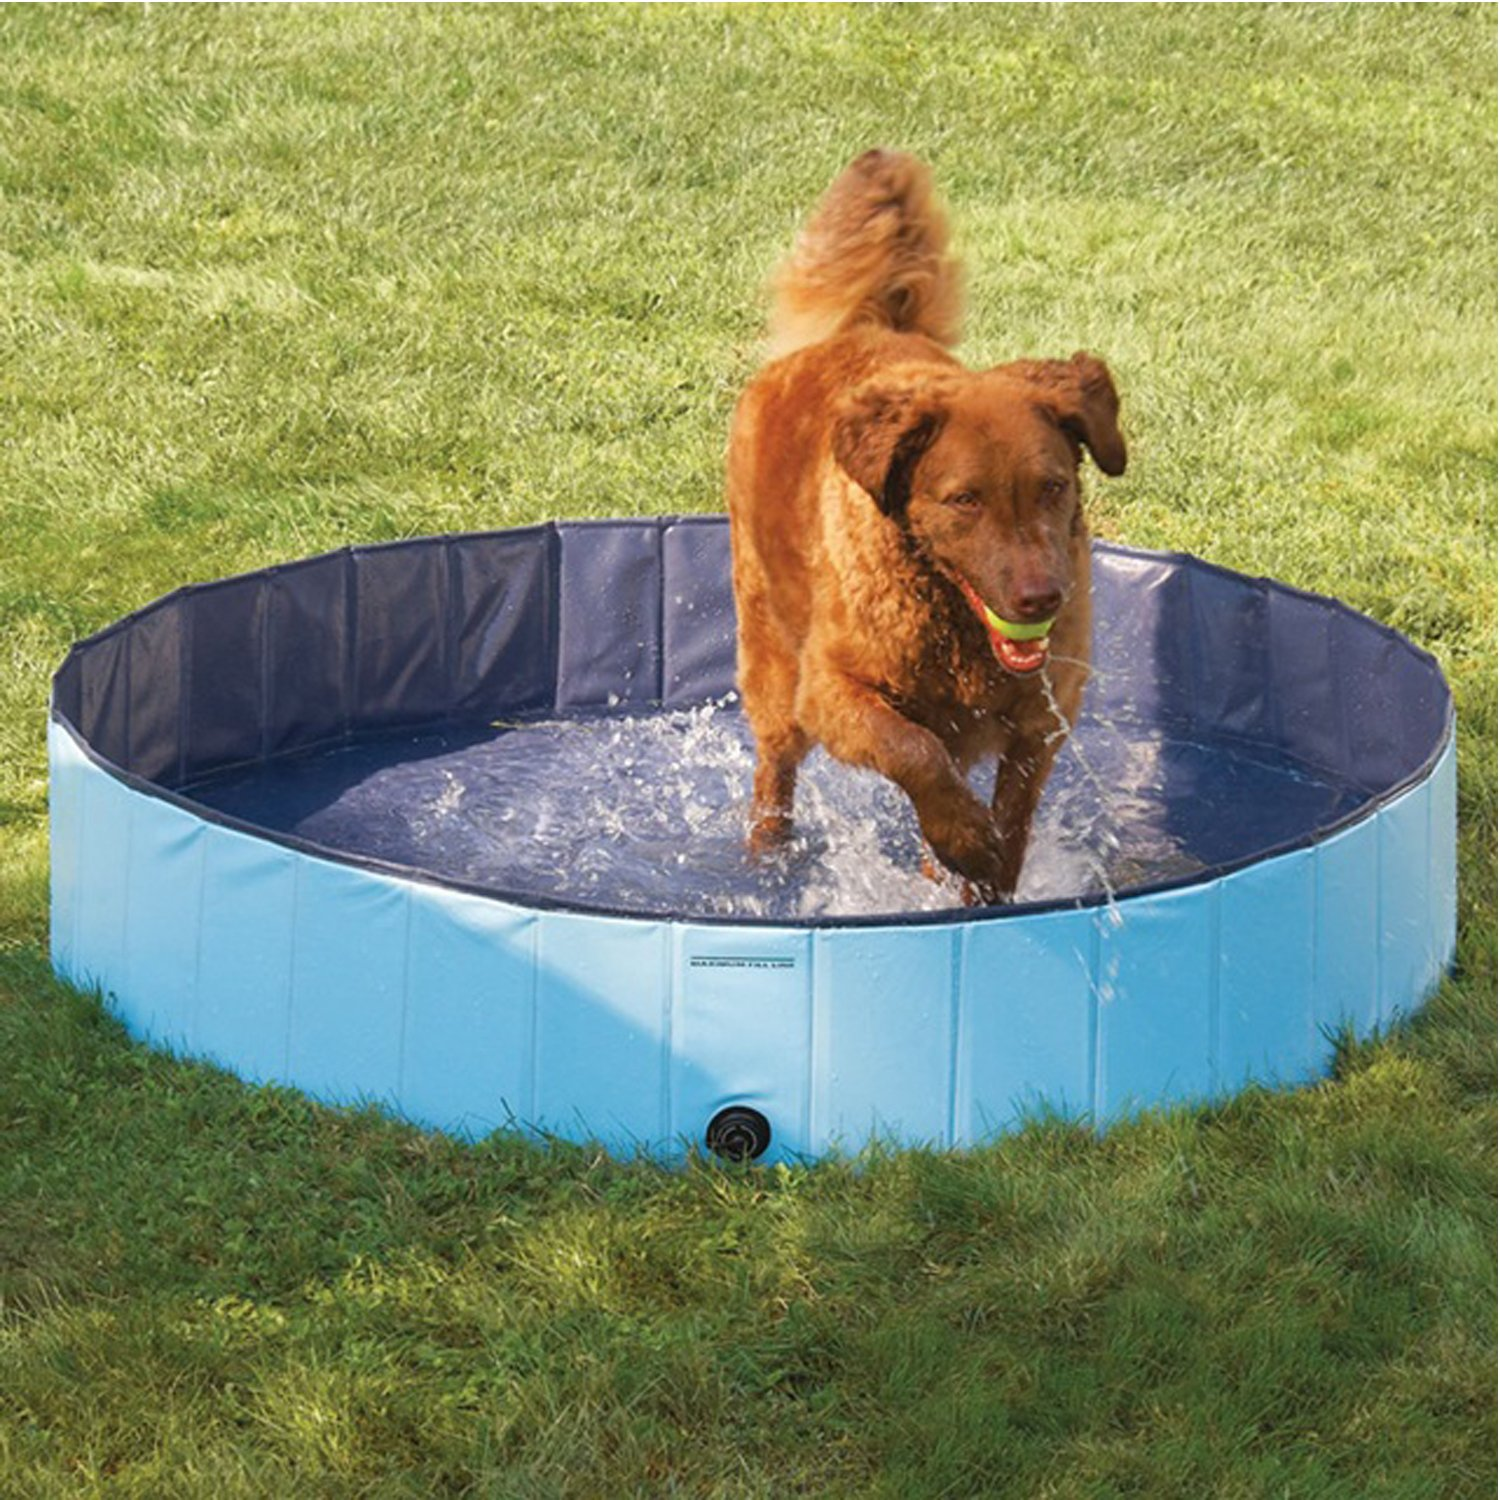 160x30CM Forever Speed Dog Pool Multifunctional Foldable Pet Pool Outdoor Indoor Portable Outdoor Tough and Sturdy Pet Swimming Pool 160  30CM bluee